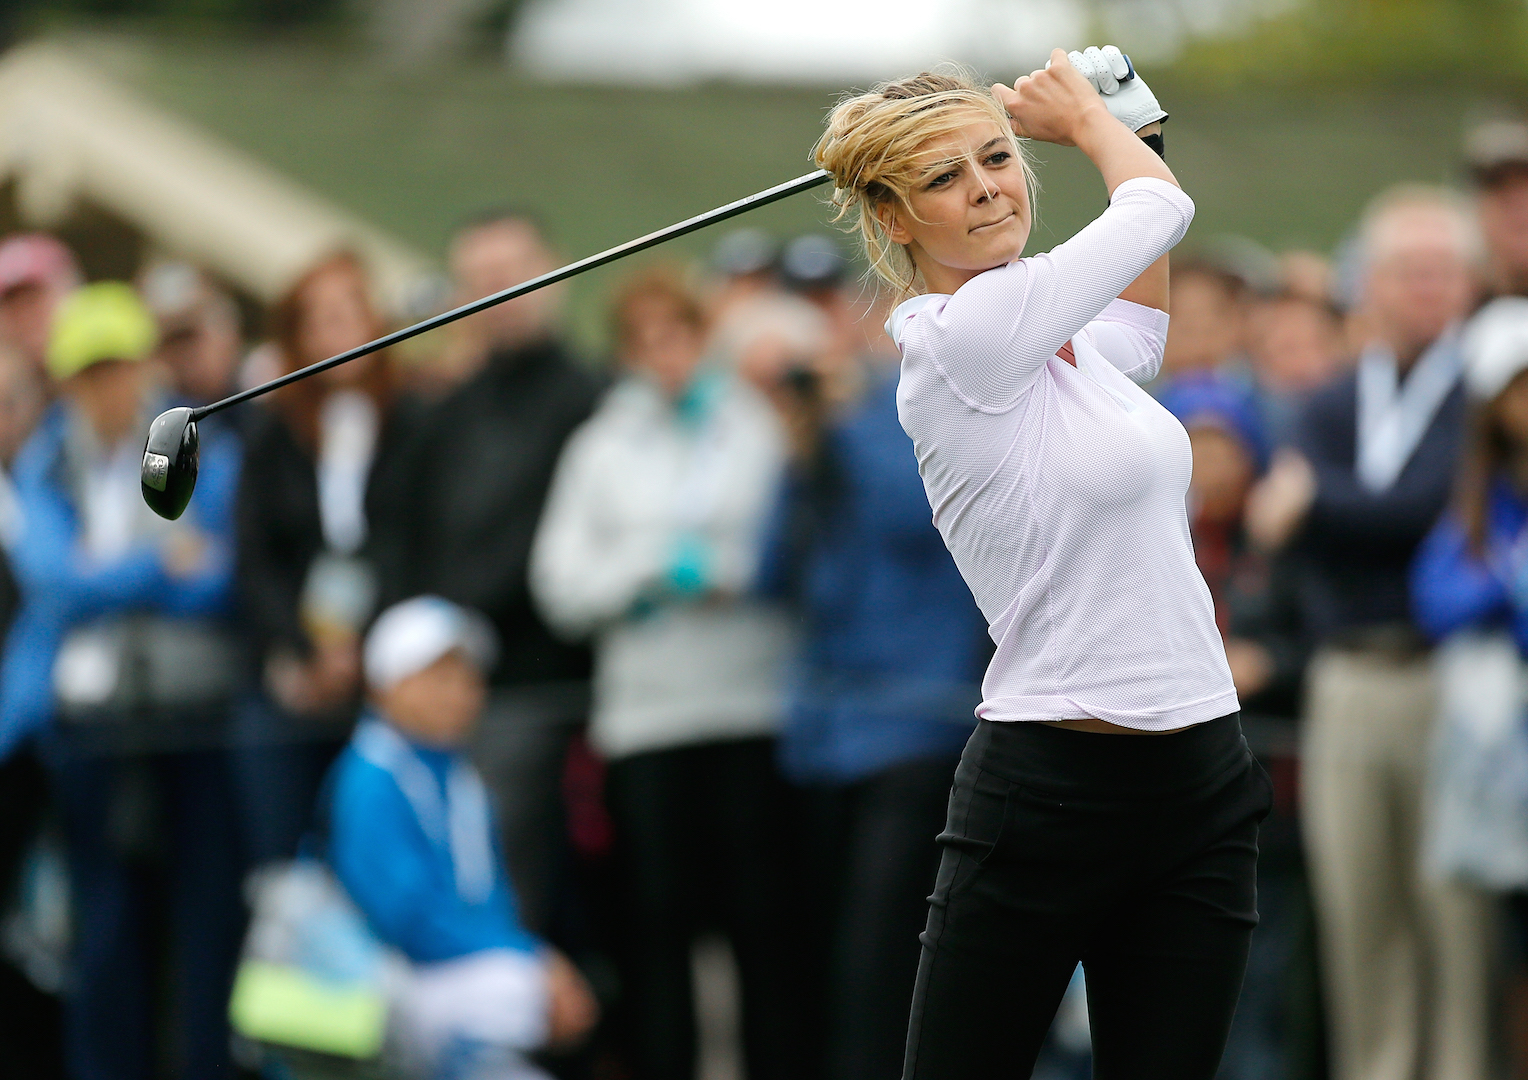 Baywatch star Kelly Rohrbach's  golf dream comes true